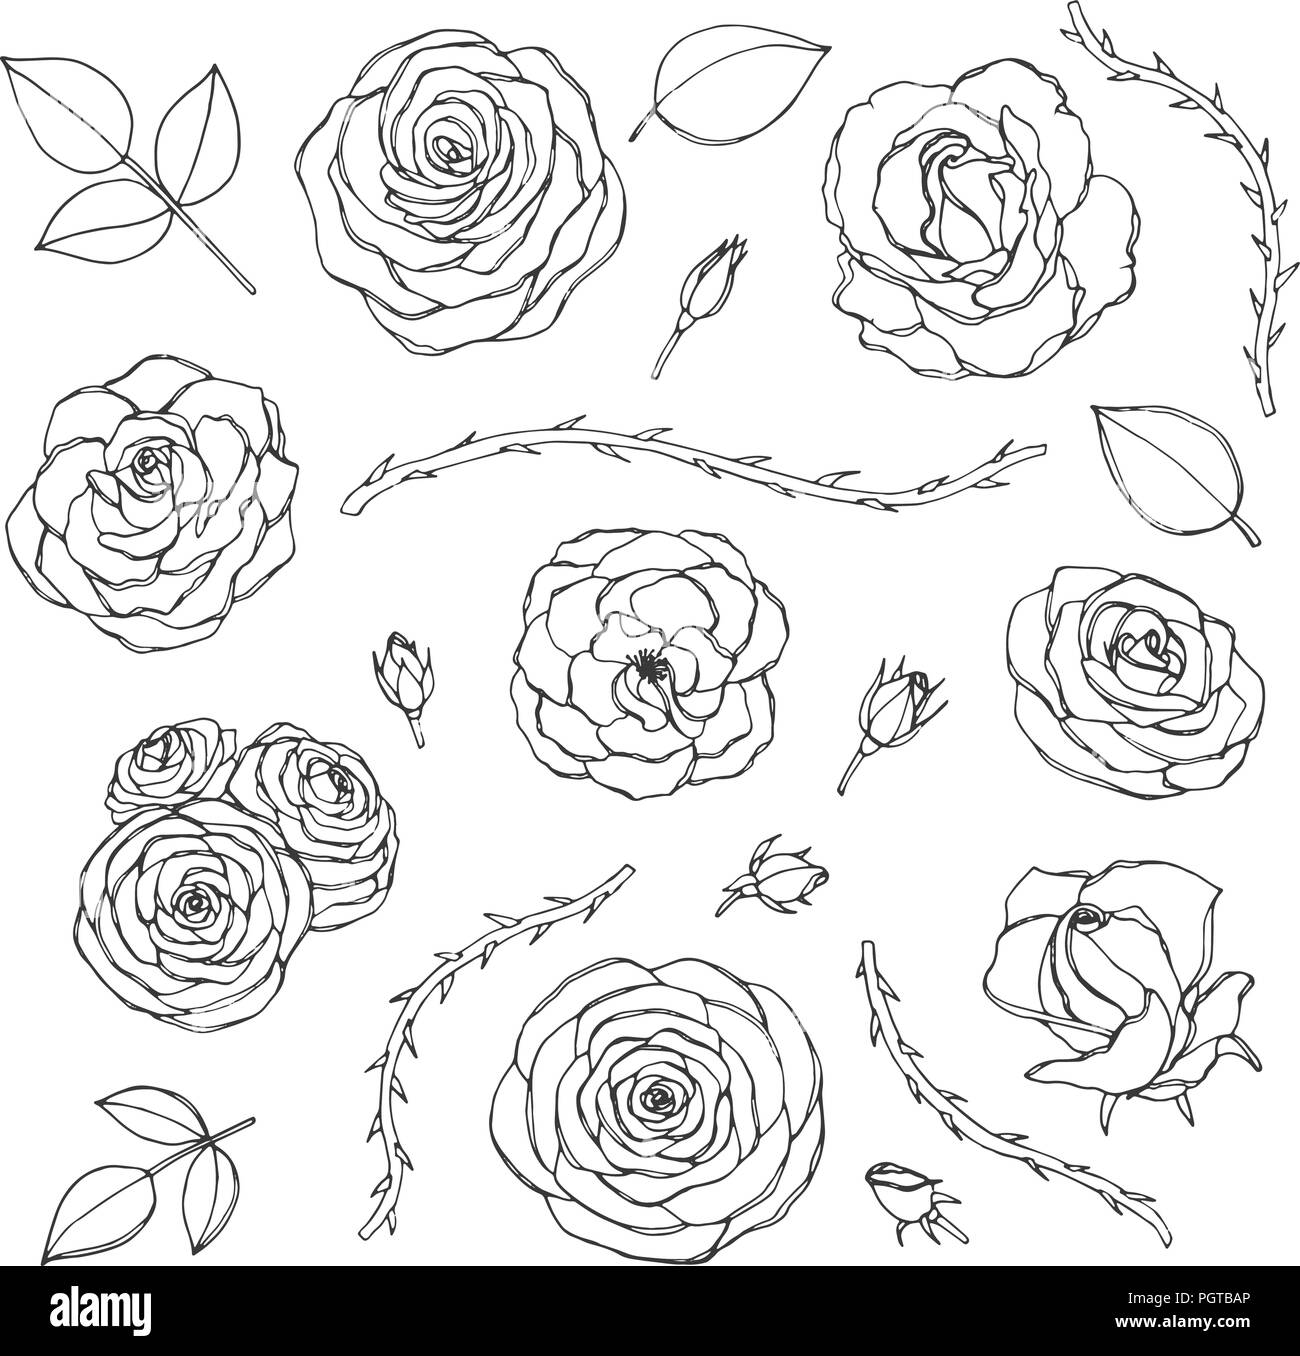 Vector hand drawn set of rose flowers with buds, leaves and thorny stems line art isolated on the white background. Floral collection of blossoms in s - Stock Image